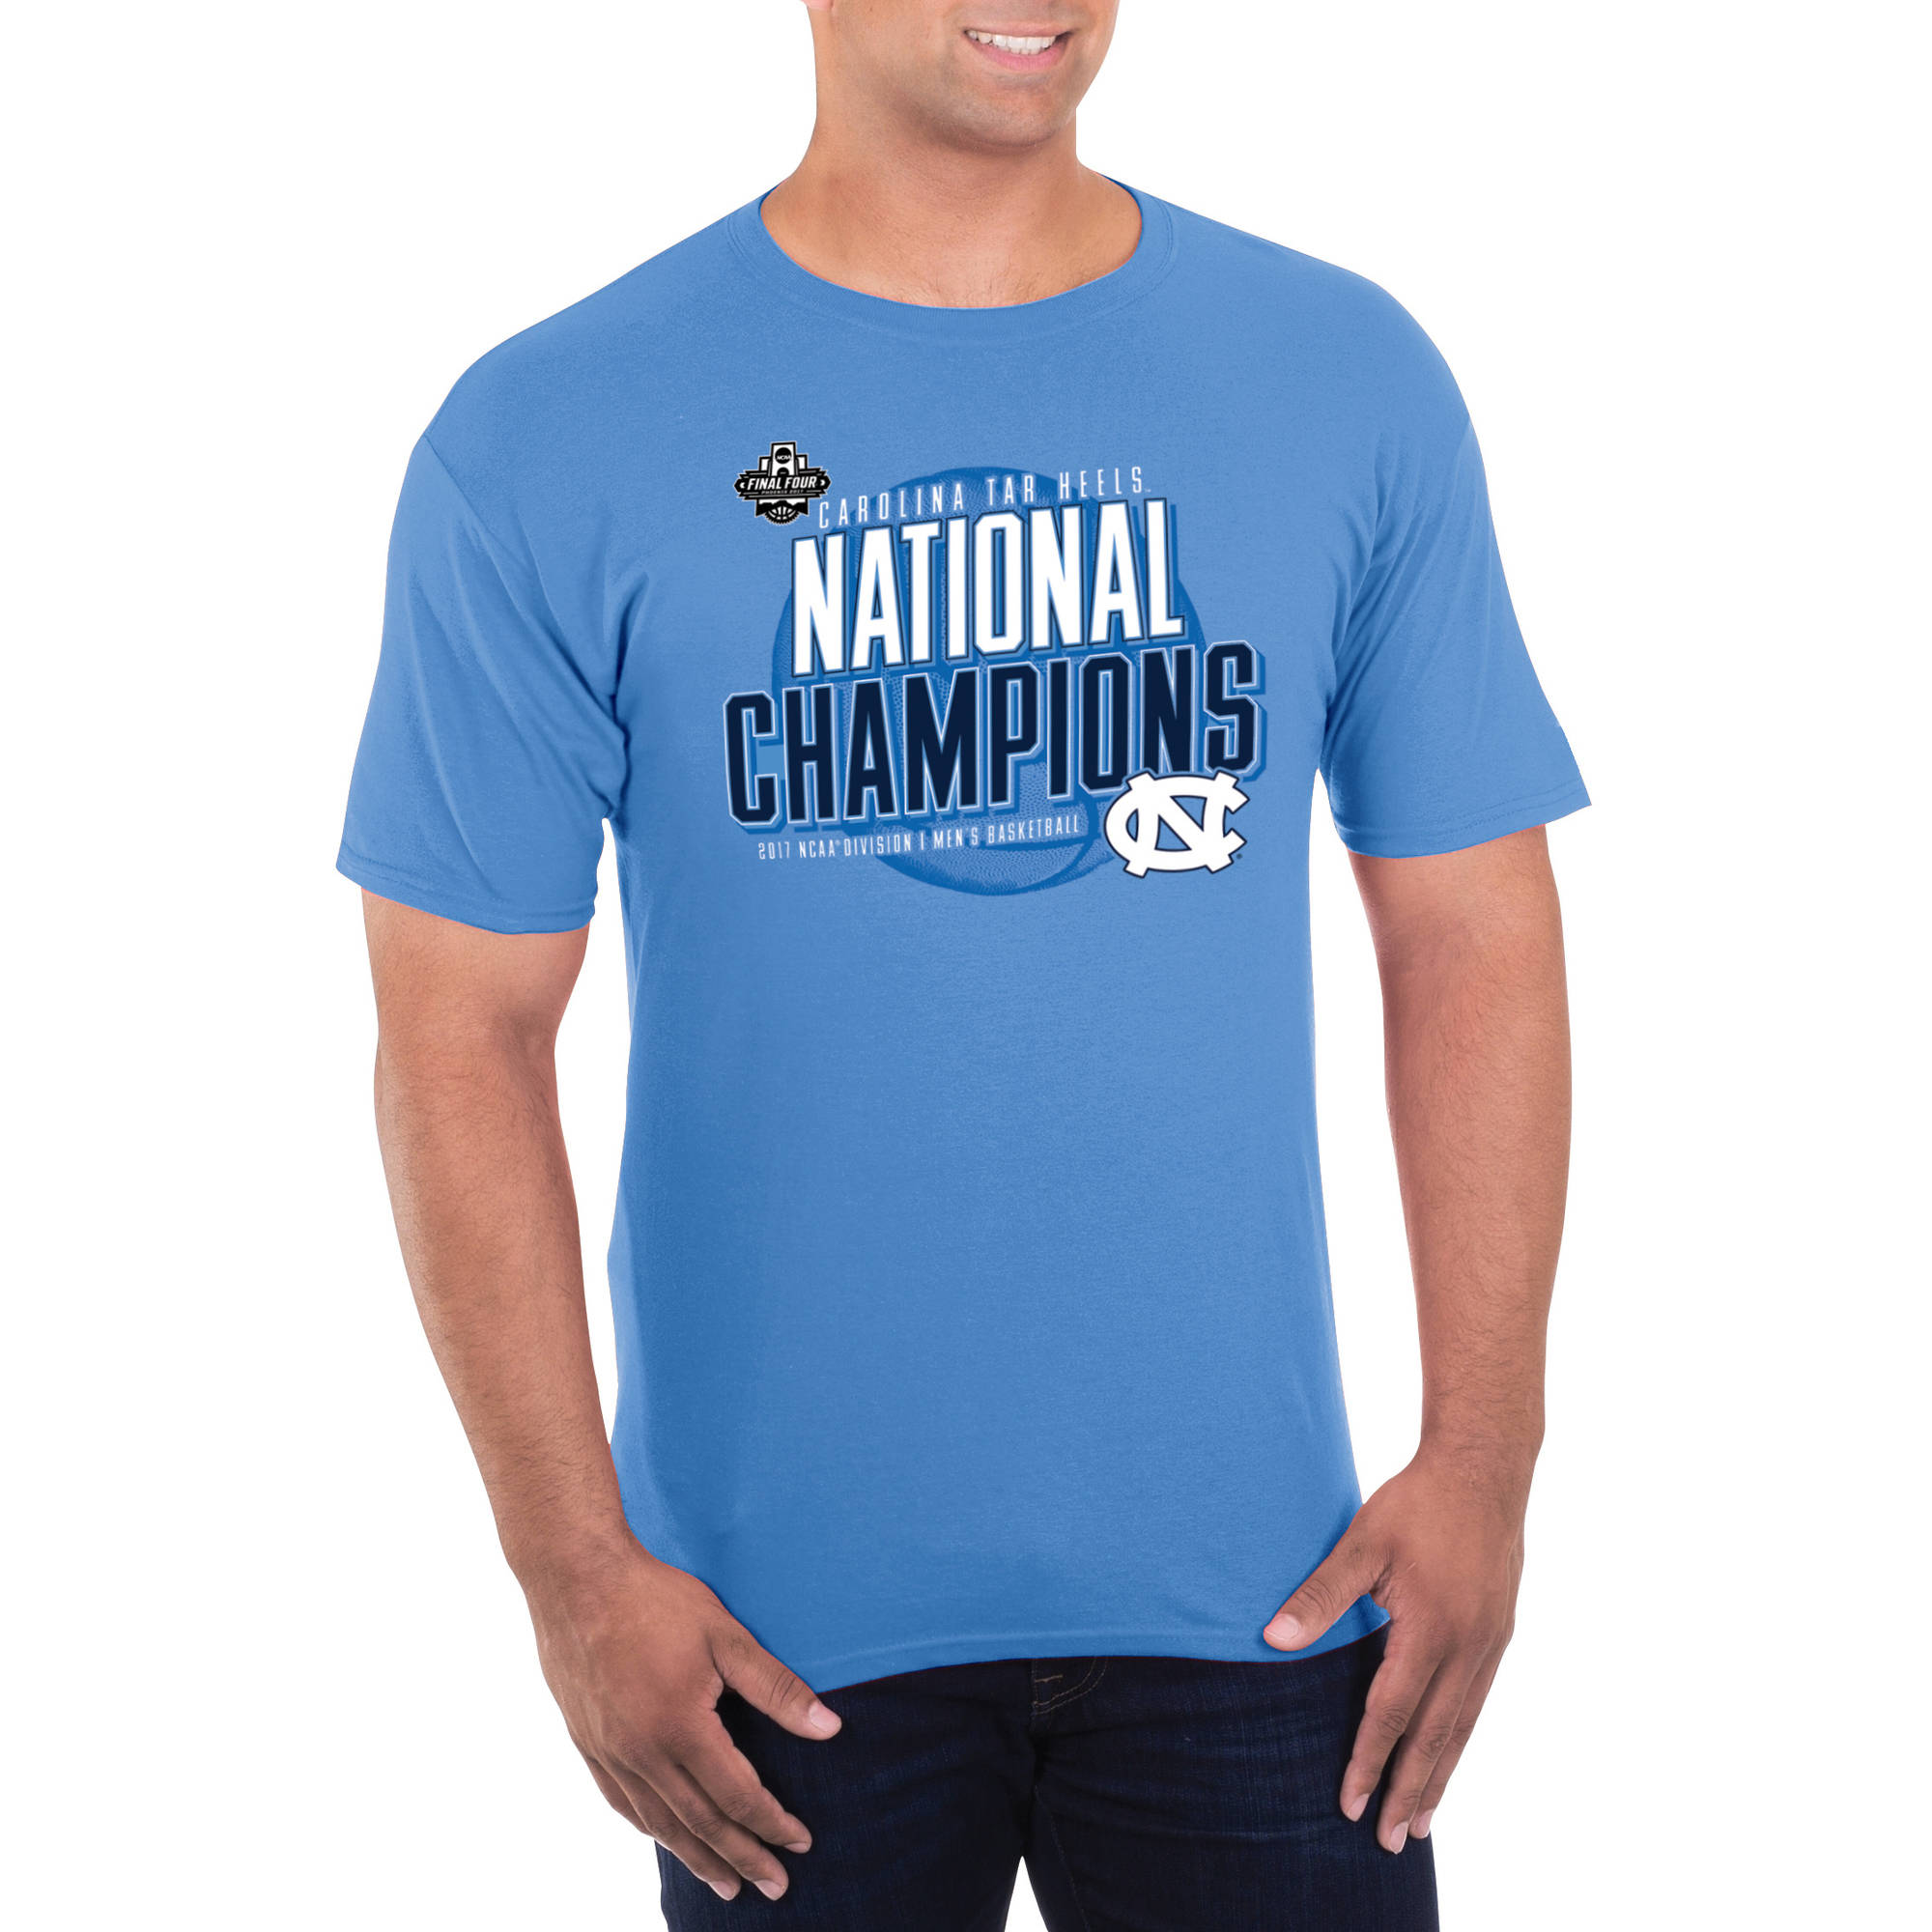 UNC Tar Heels, 2017 NCAA Men's Basketball Champions T-shirt